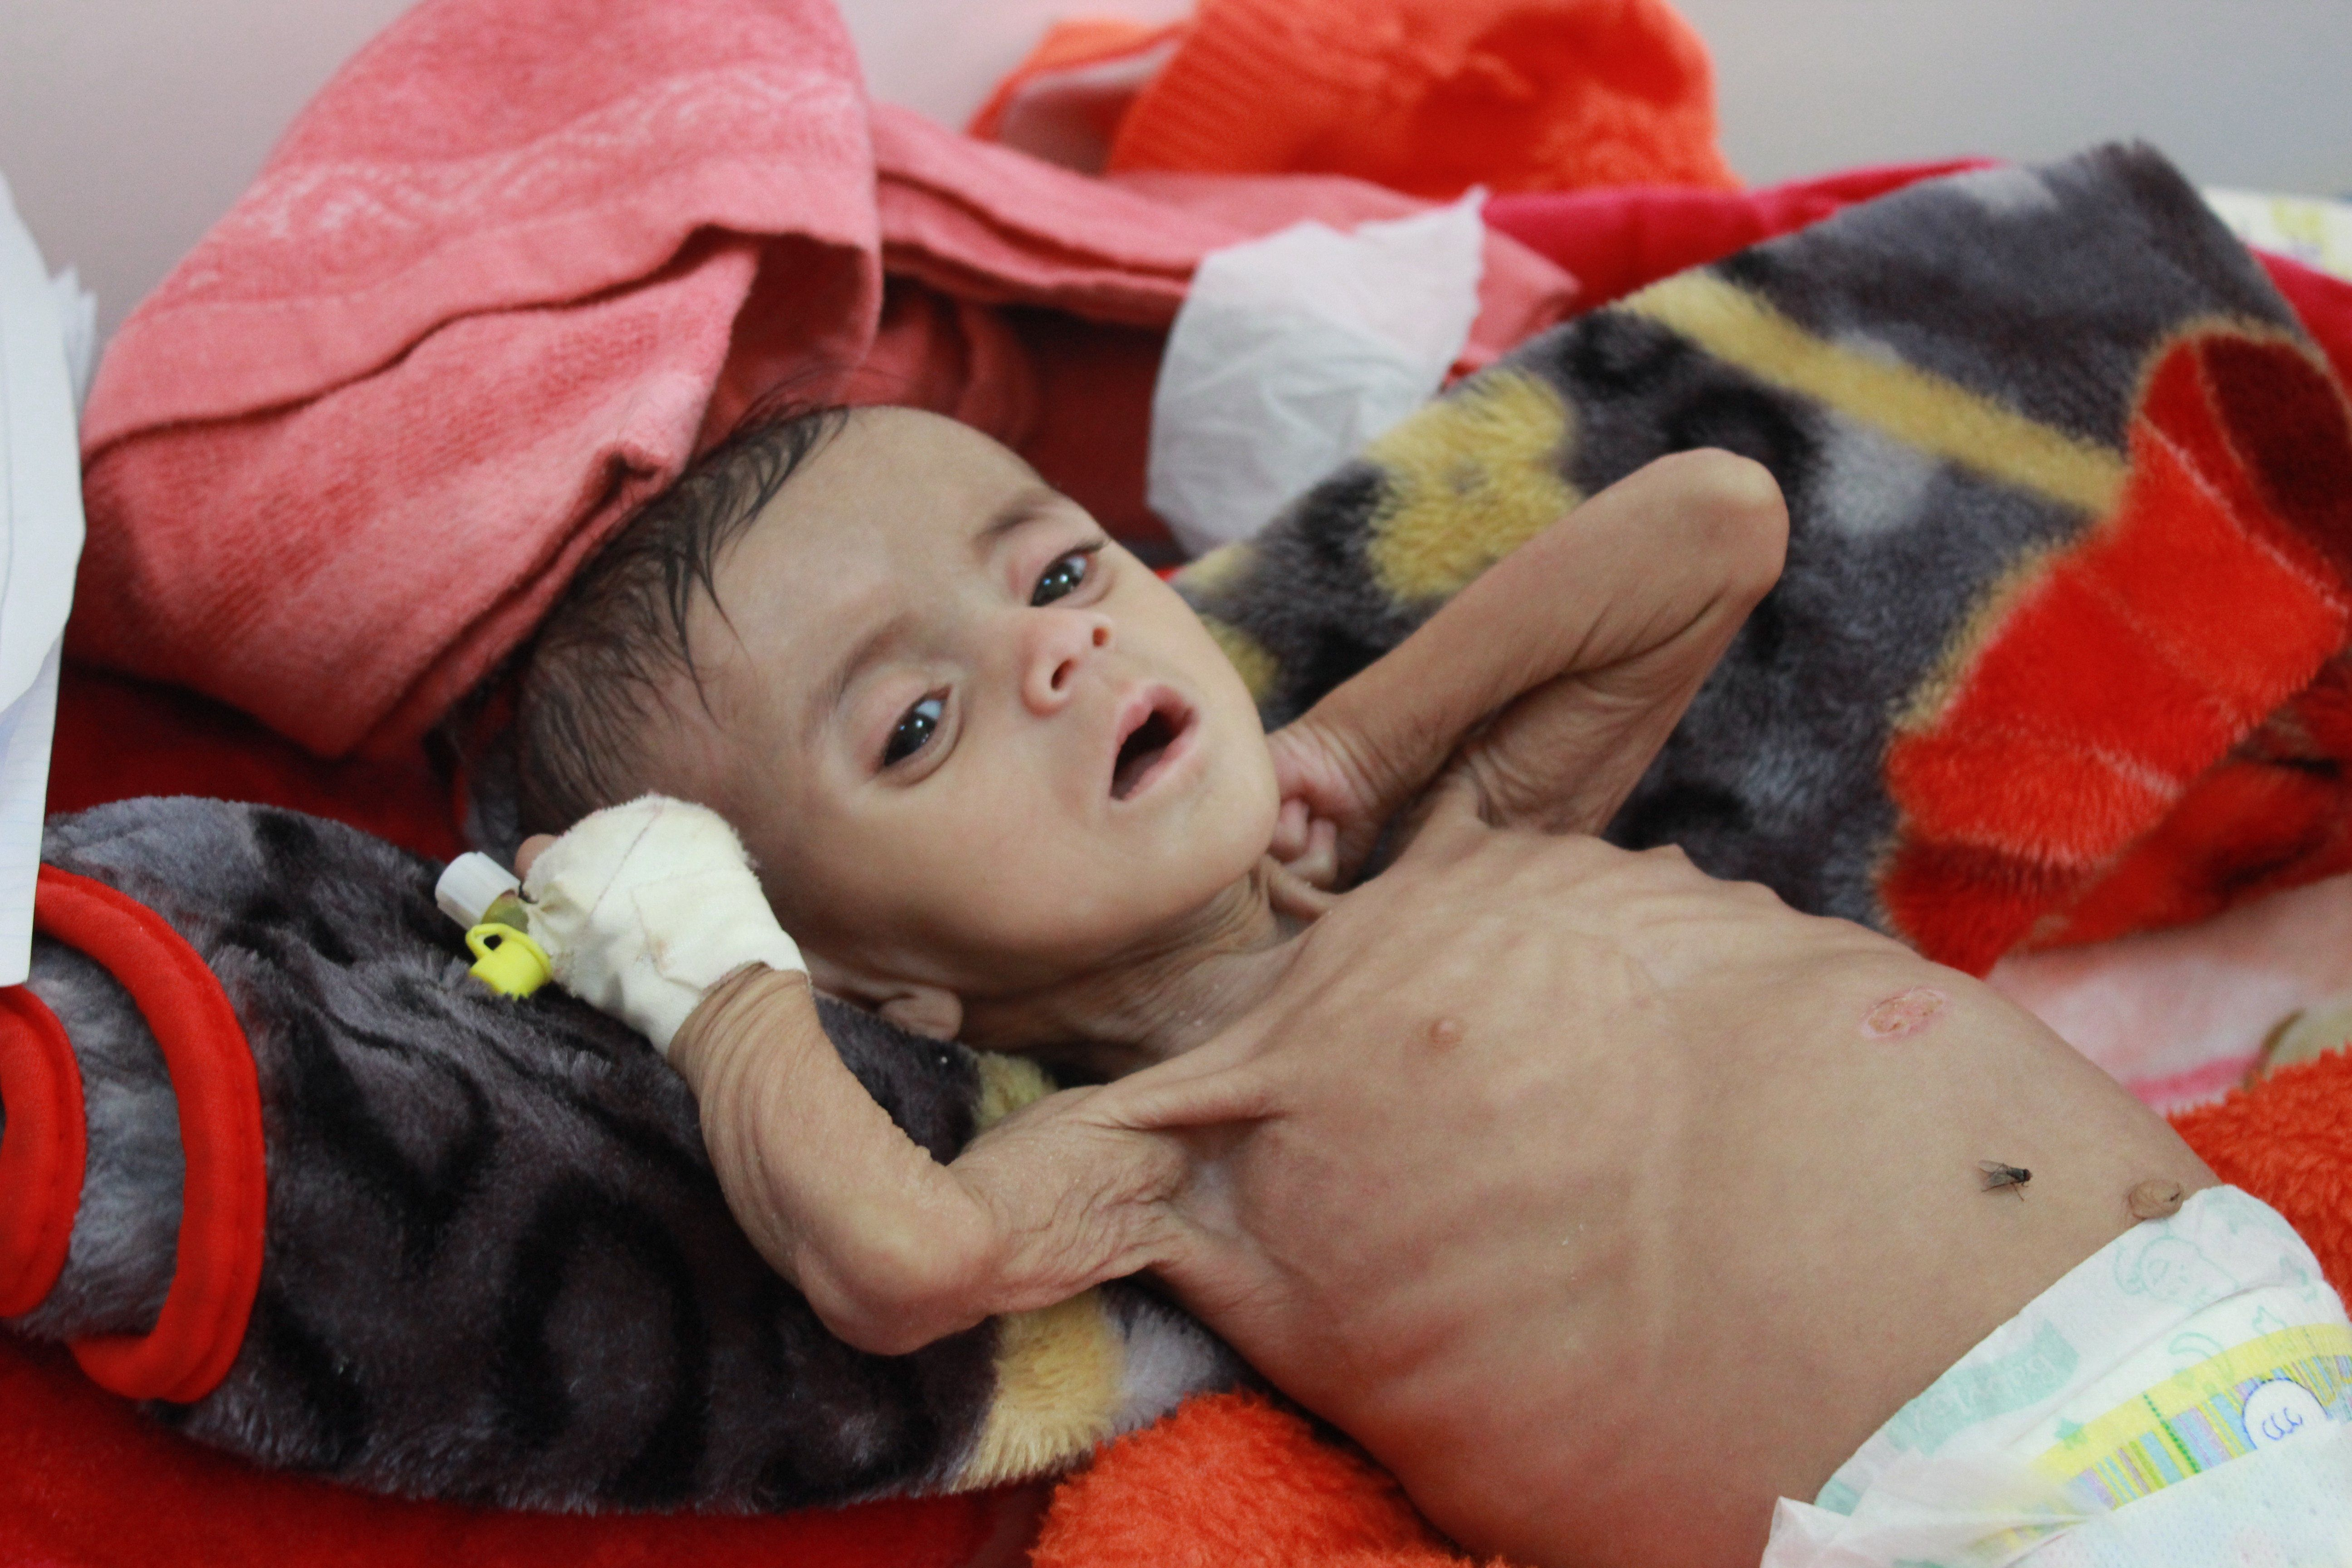 Seven-month-old Zainab Nawaf, who suffers from malnutrition, is pictured at UNICEF-supported Al-Jumhouri Hospital in Saada, Y